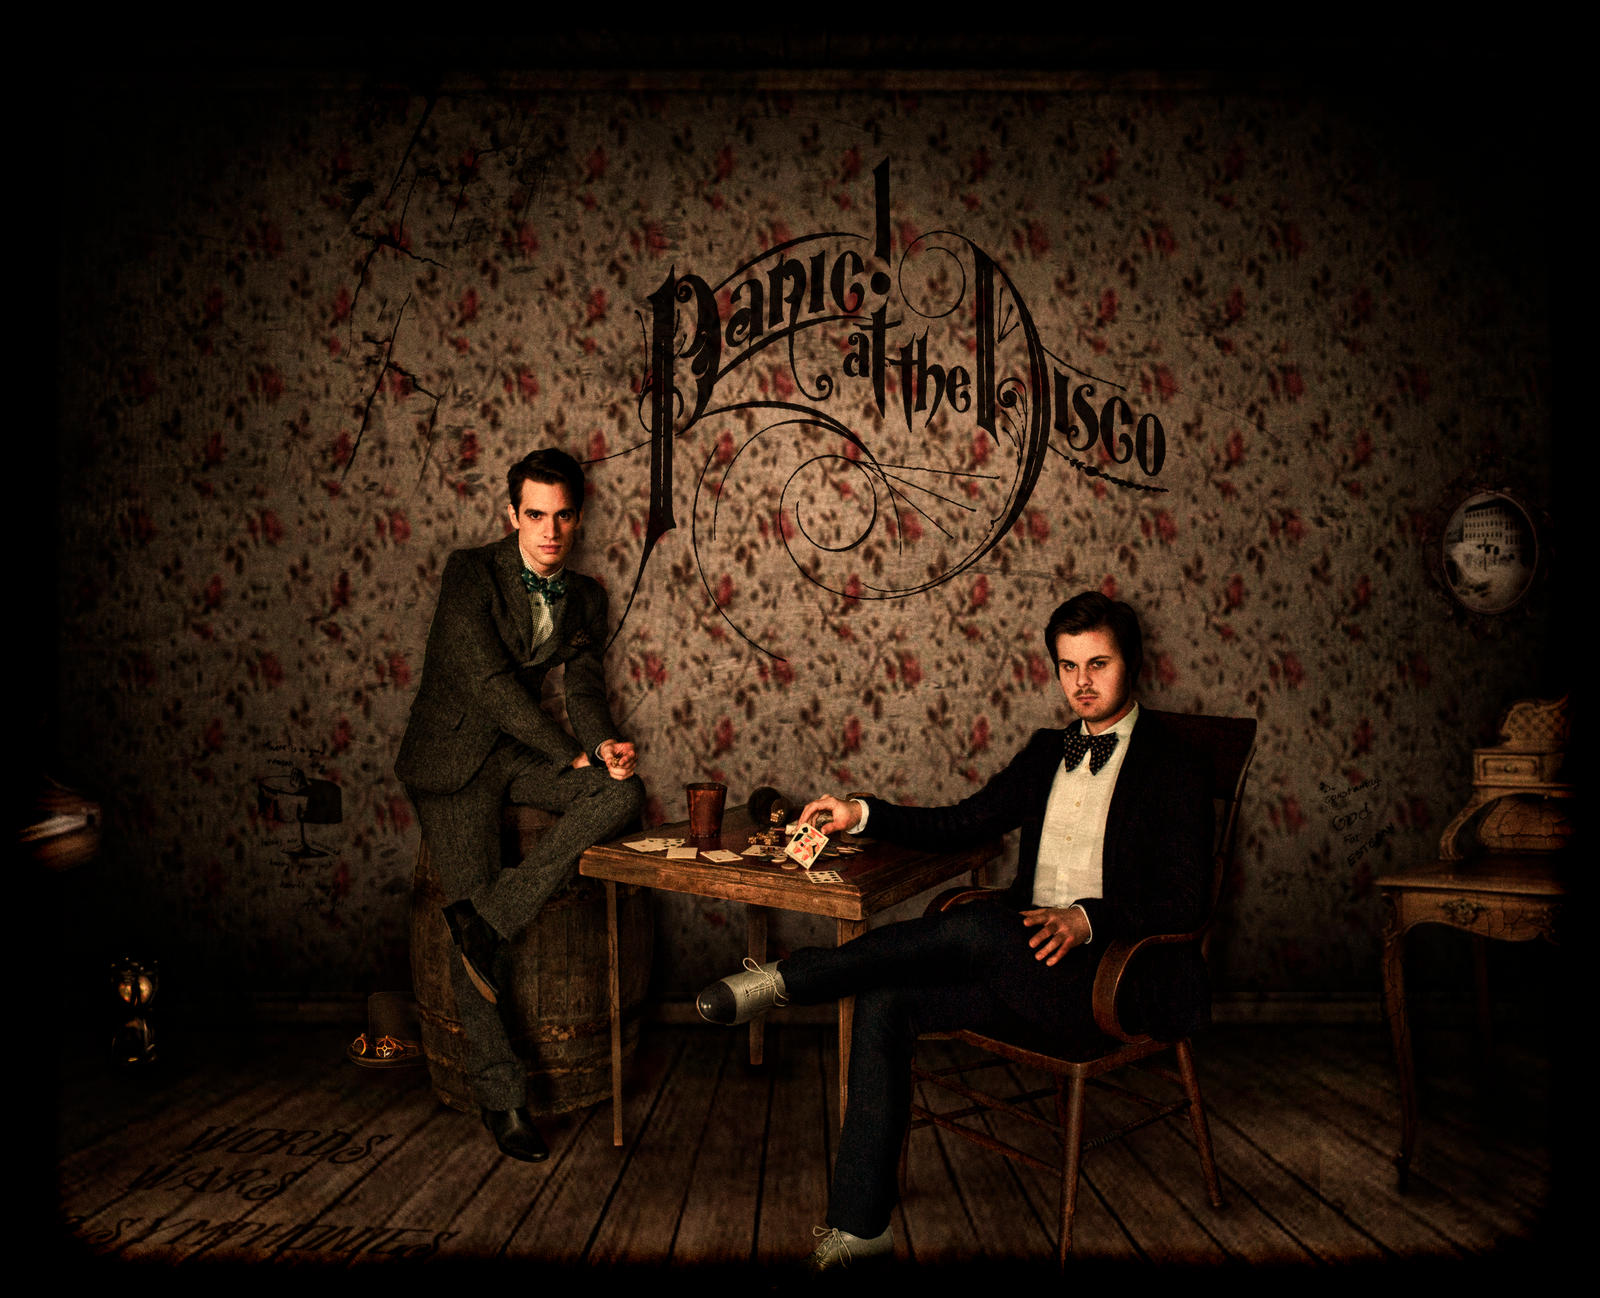 panic at the disco desktop wallpaperPanic At The Disco Logo Wallpaper